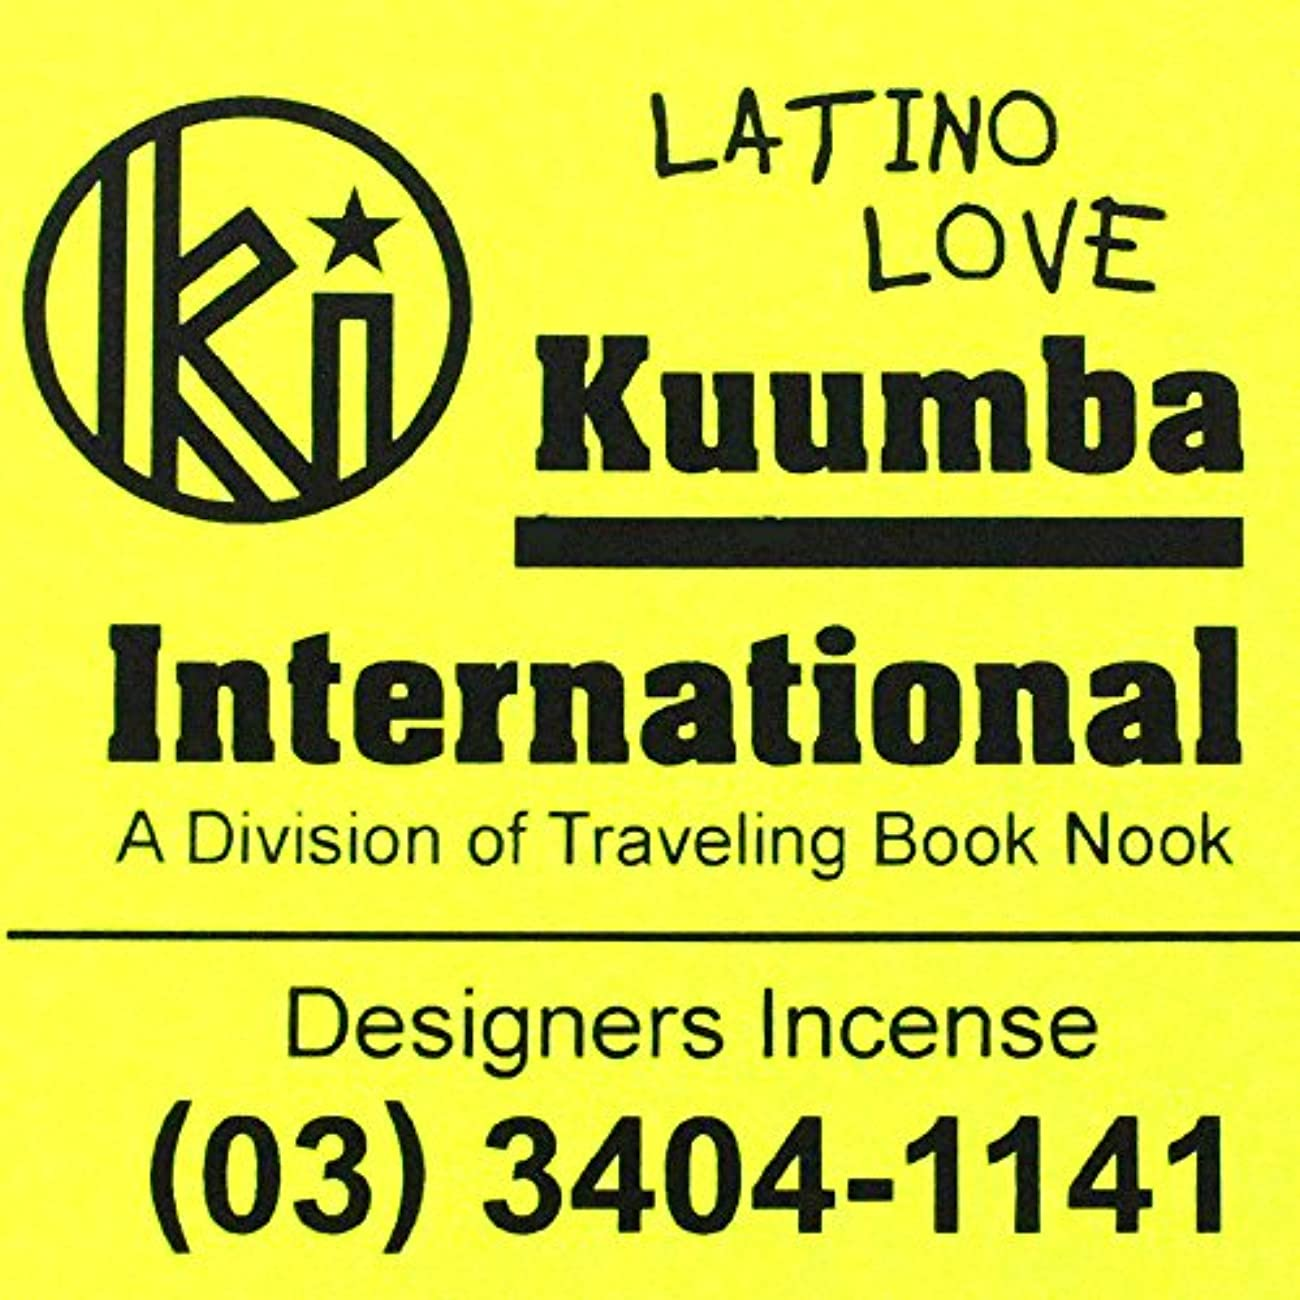 干し草縮れた試みる(クンバ) KUUMBA『incense』(LATINO LOVE) (Regular size)